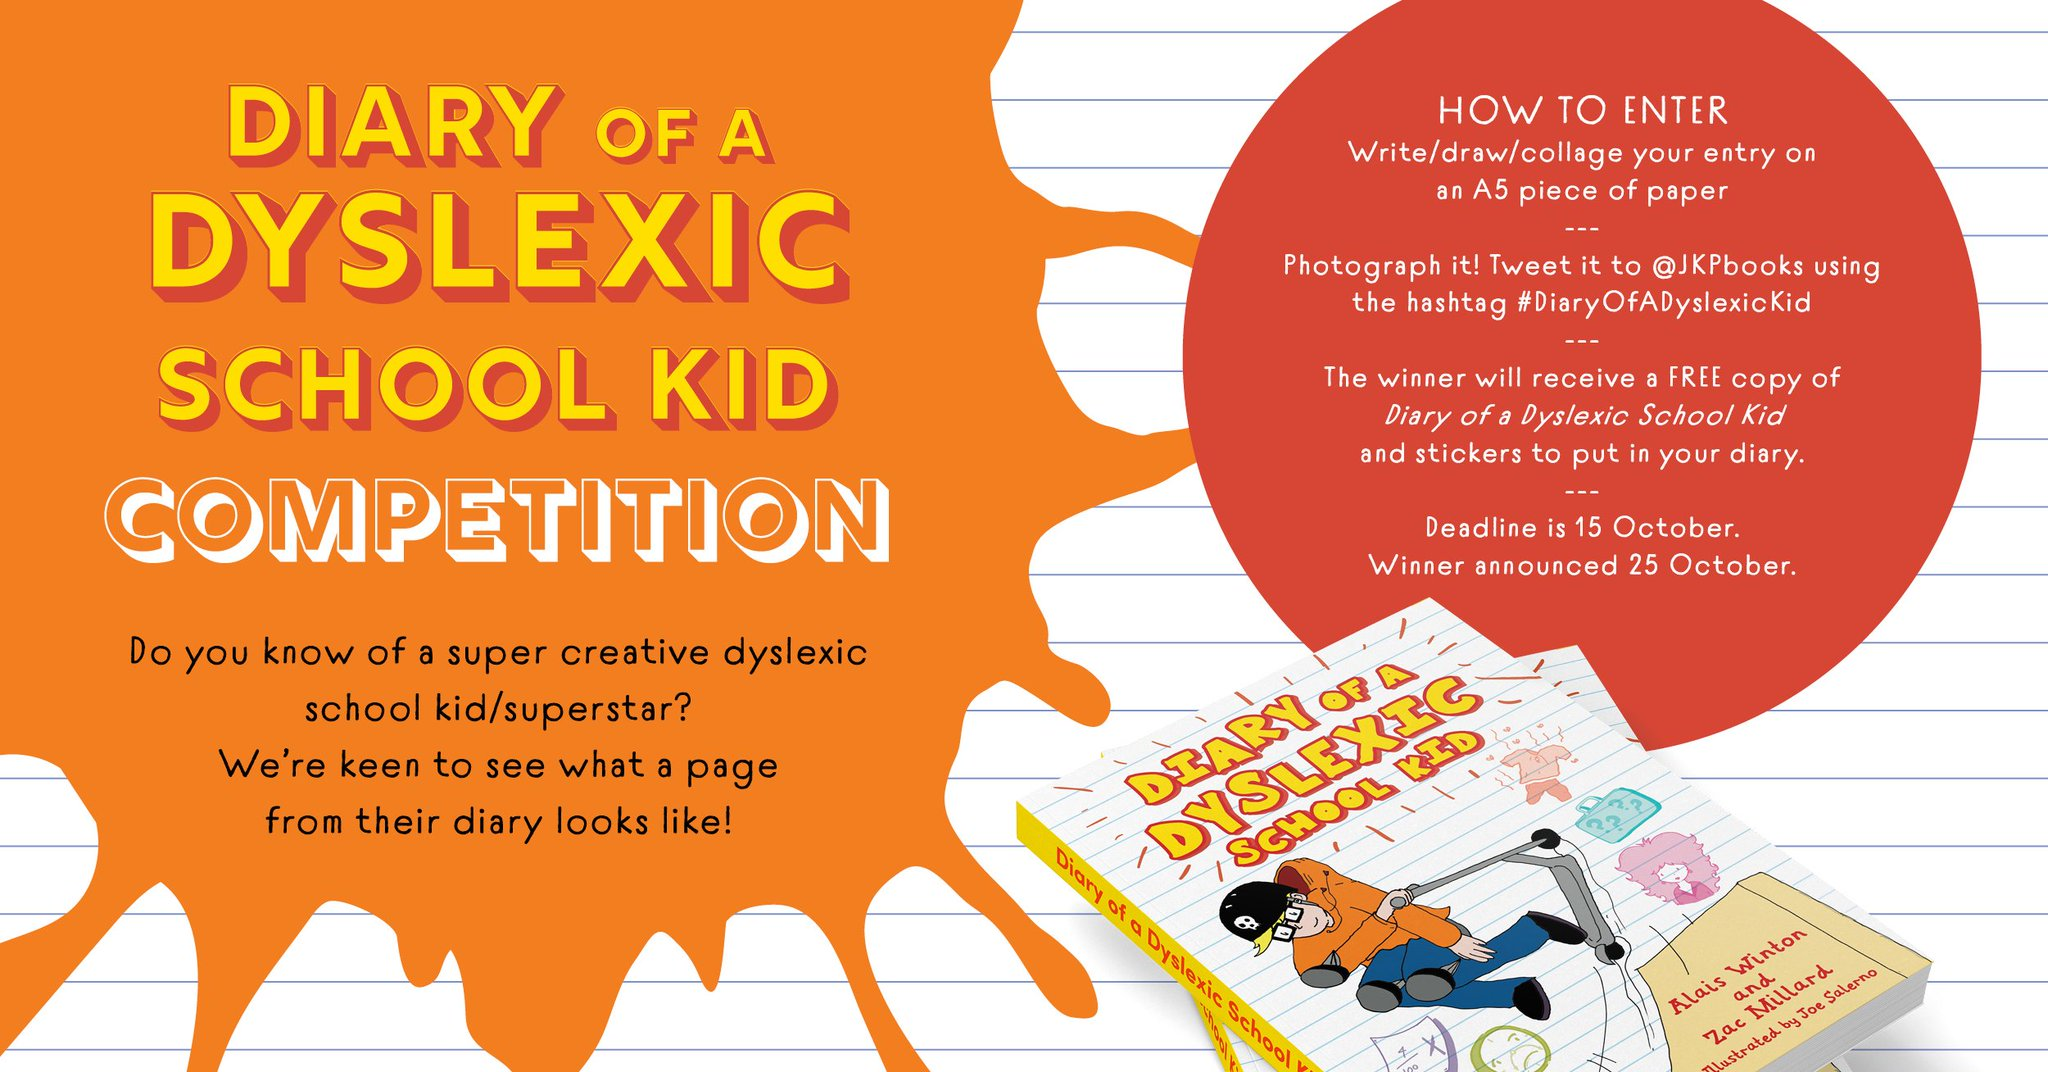 ENTER OUR COMPETITION:   We're running a competition for dyslexic kids to show off their creative flair.   Winners will receive a free copy of 'Diary of a Dyslexic School Kid' and stickers.   See the instructions for how to enter in the image below. #Dyslexia #DiaryOfADyslexicKid https://t.co/lfbSWiCFtj